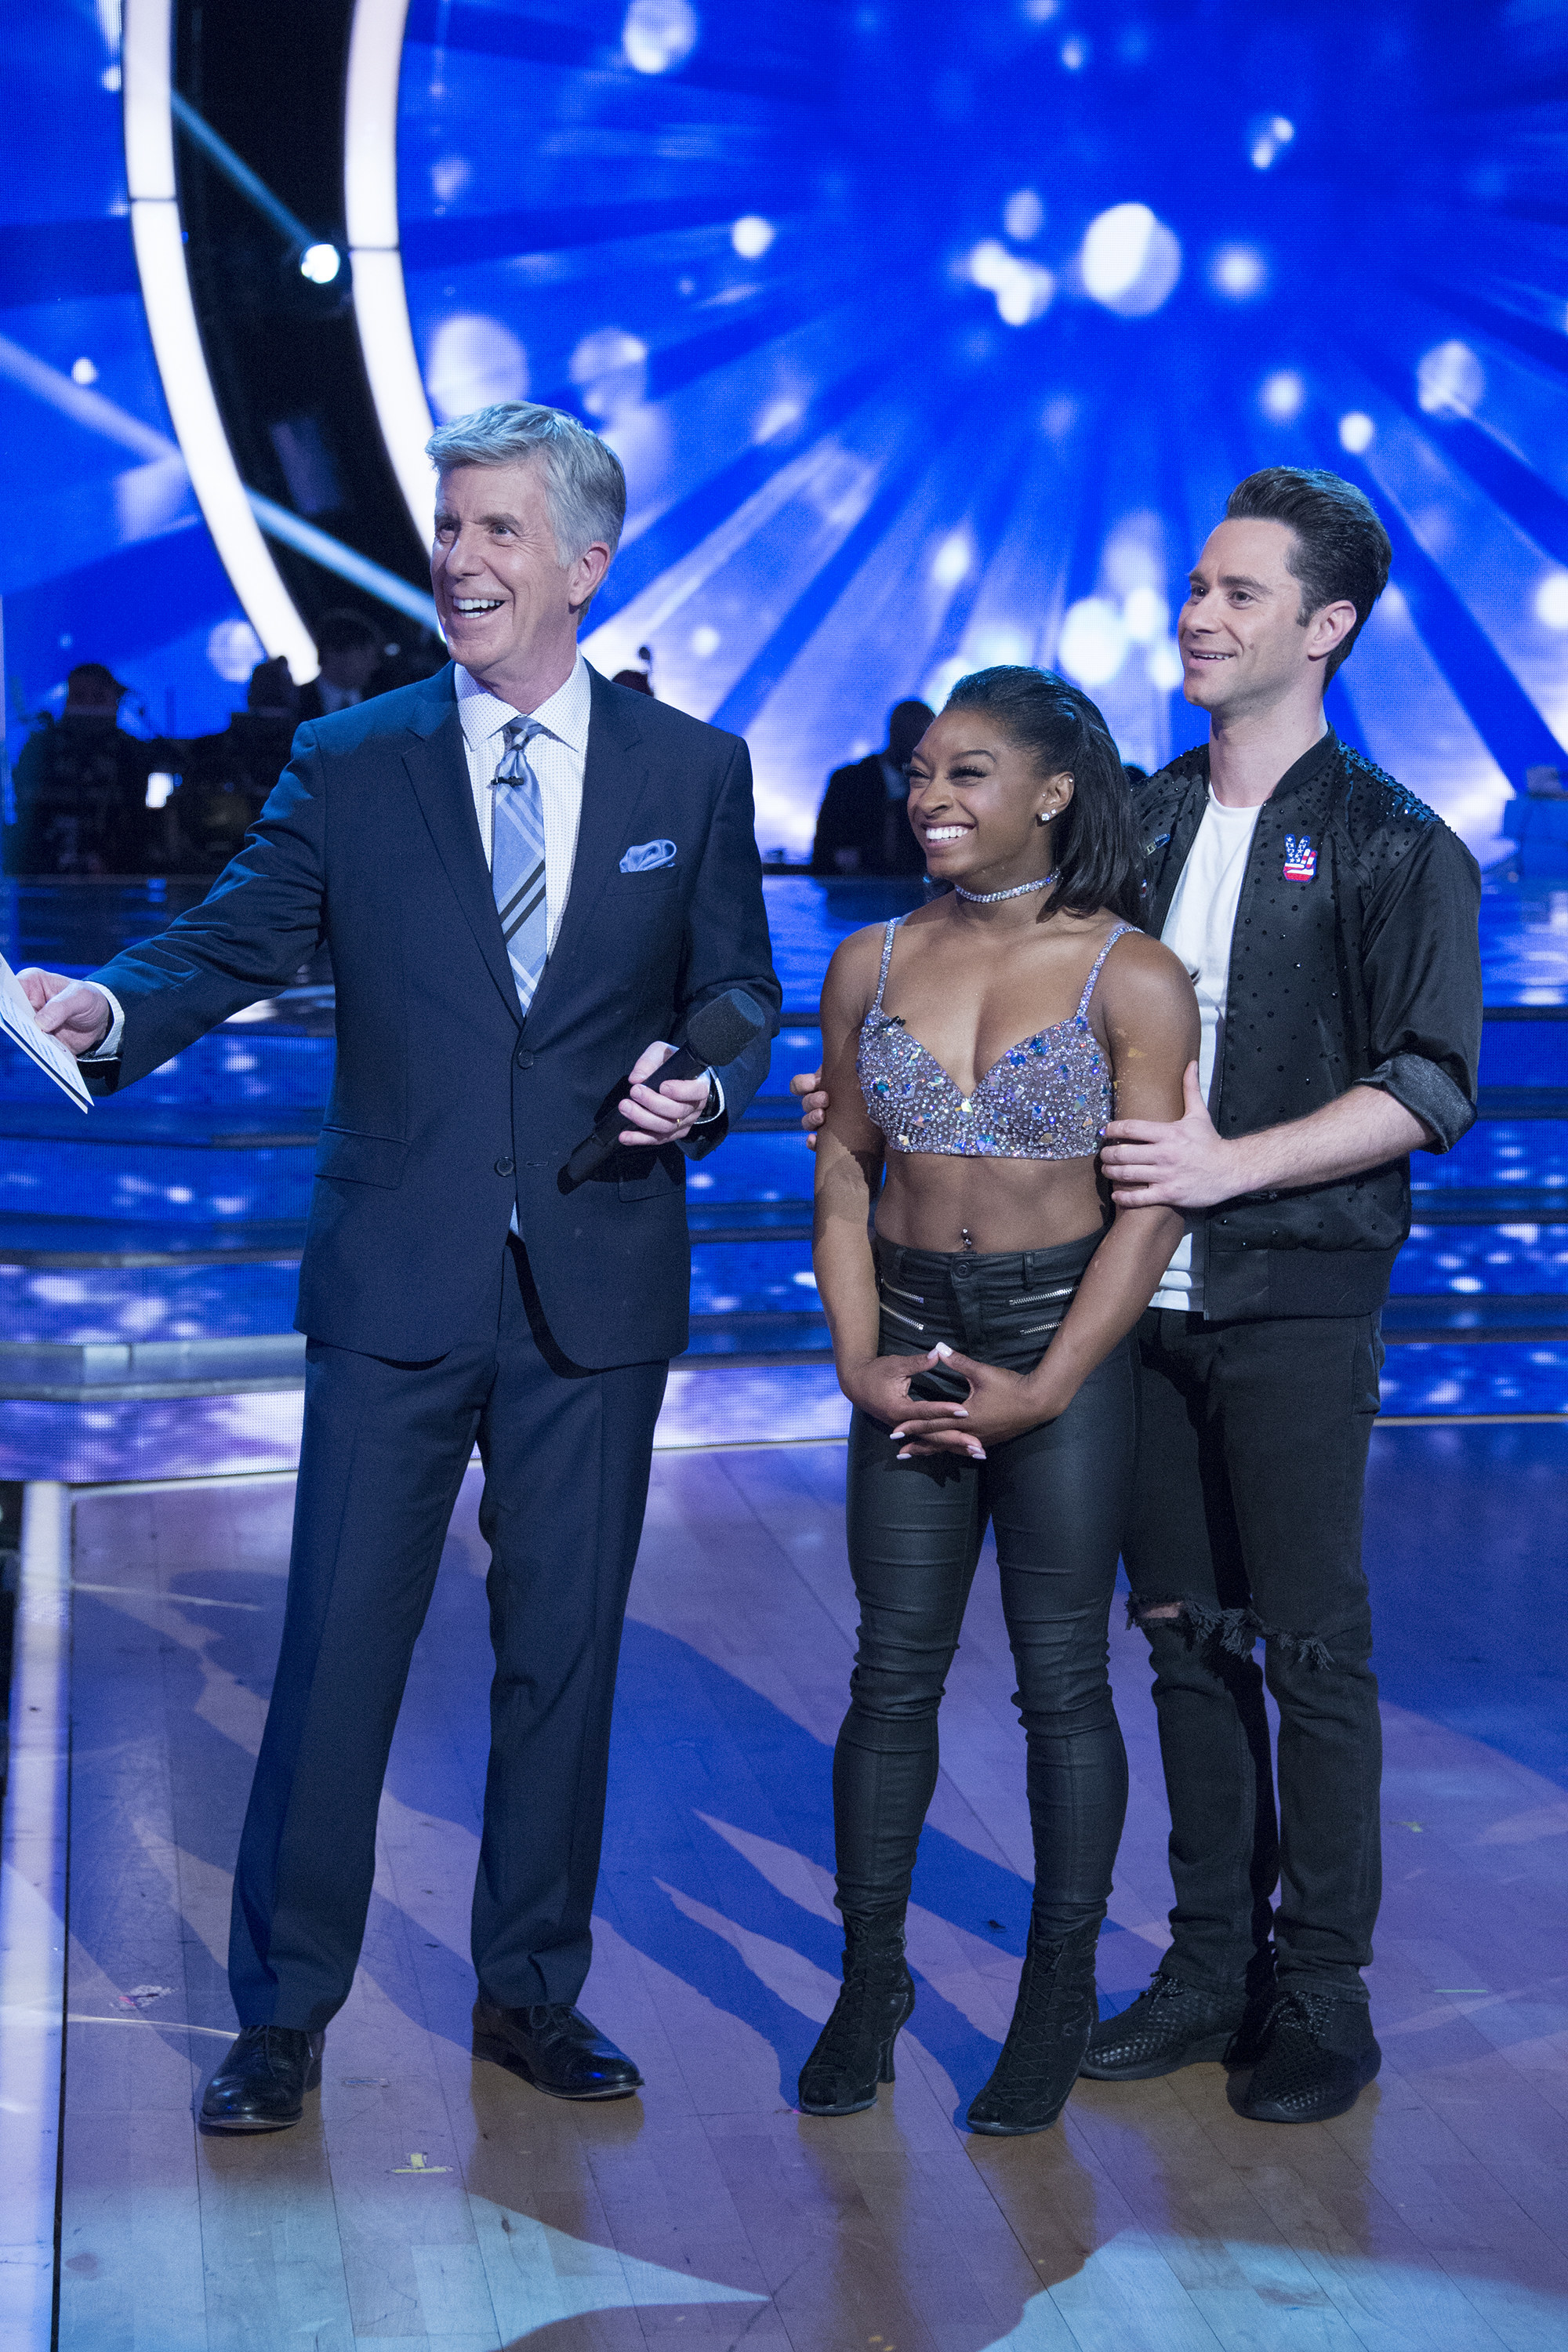 Simone waiting for her scores along with her dance partner and the host of Dancing with the Stars